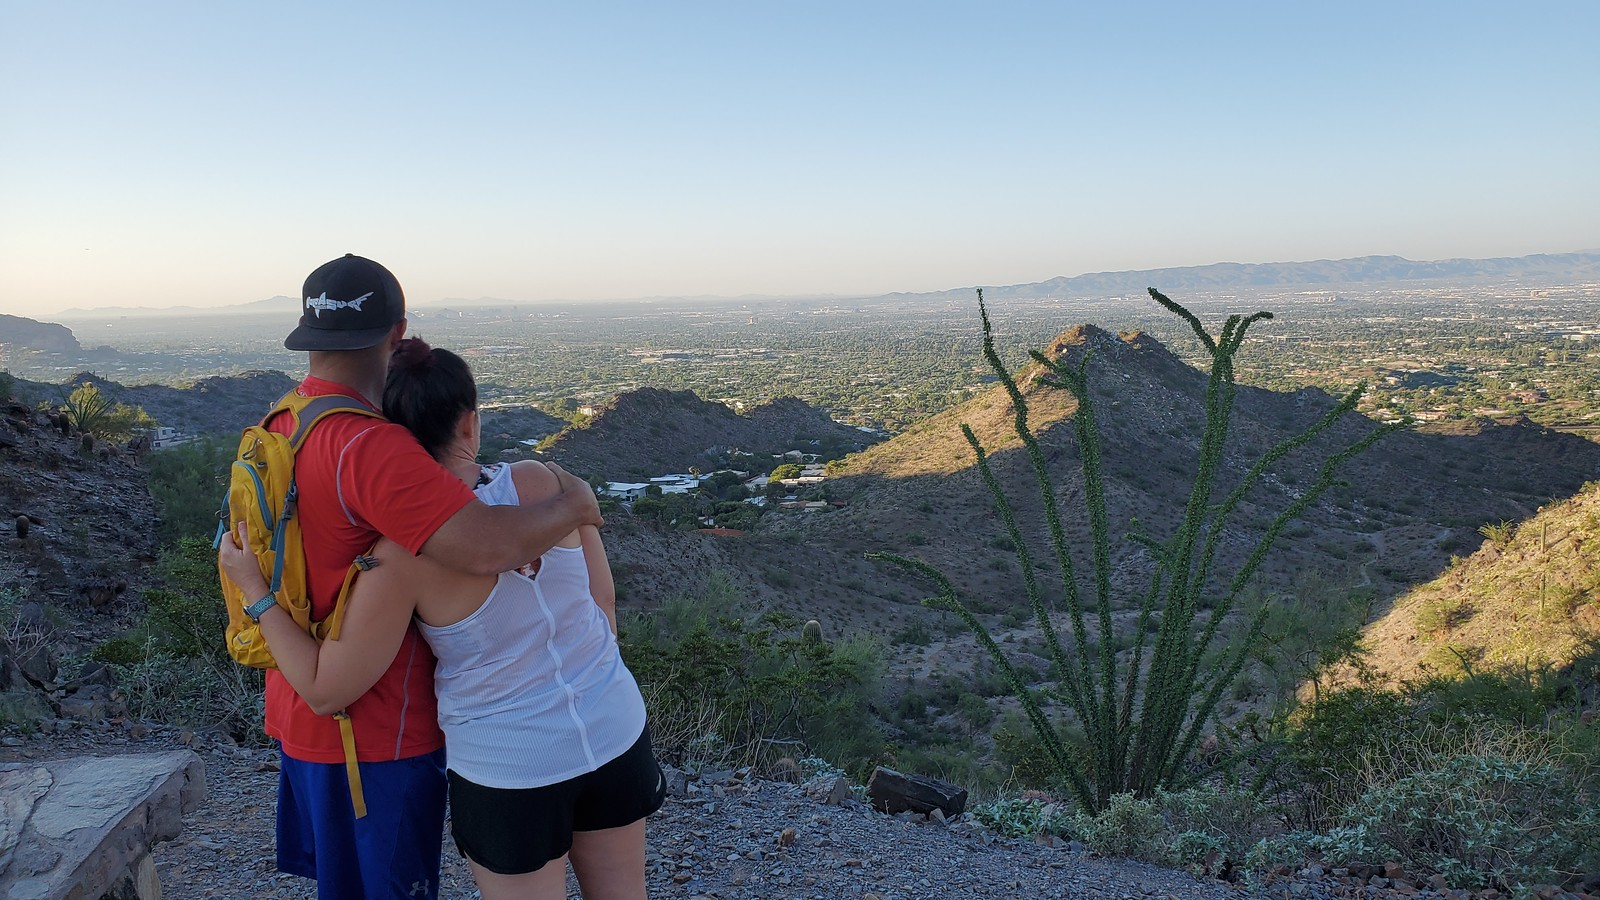 A couple embrace while taking in another beautiful view together during one of the Scottsdale hiking tours with Wild Bunch Desert Guides.